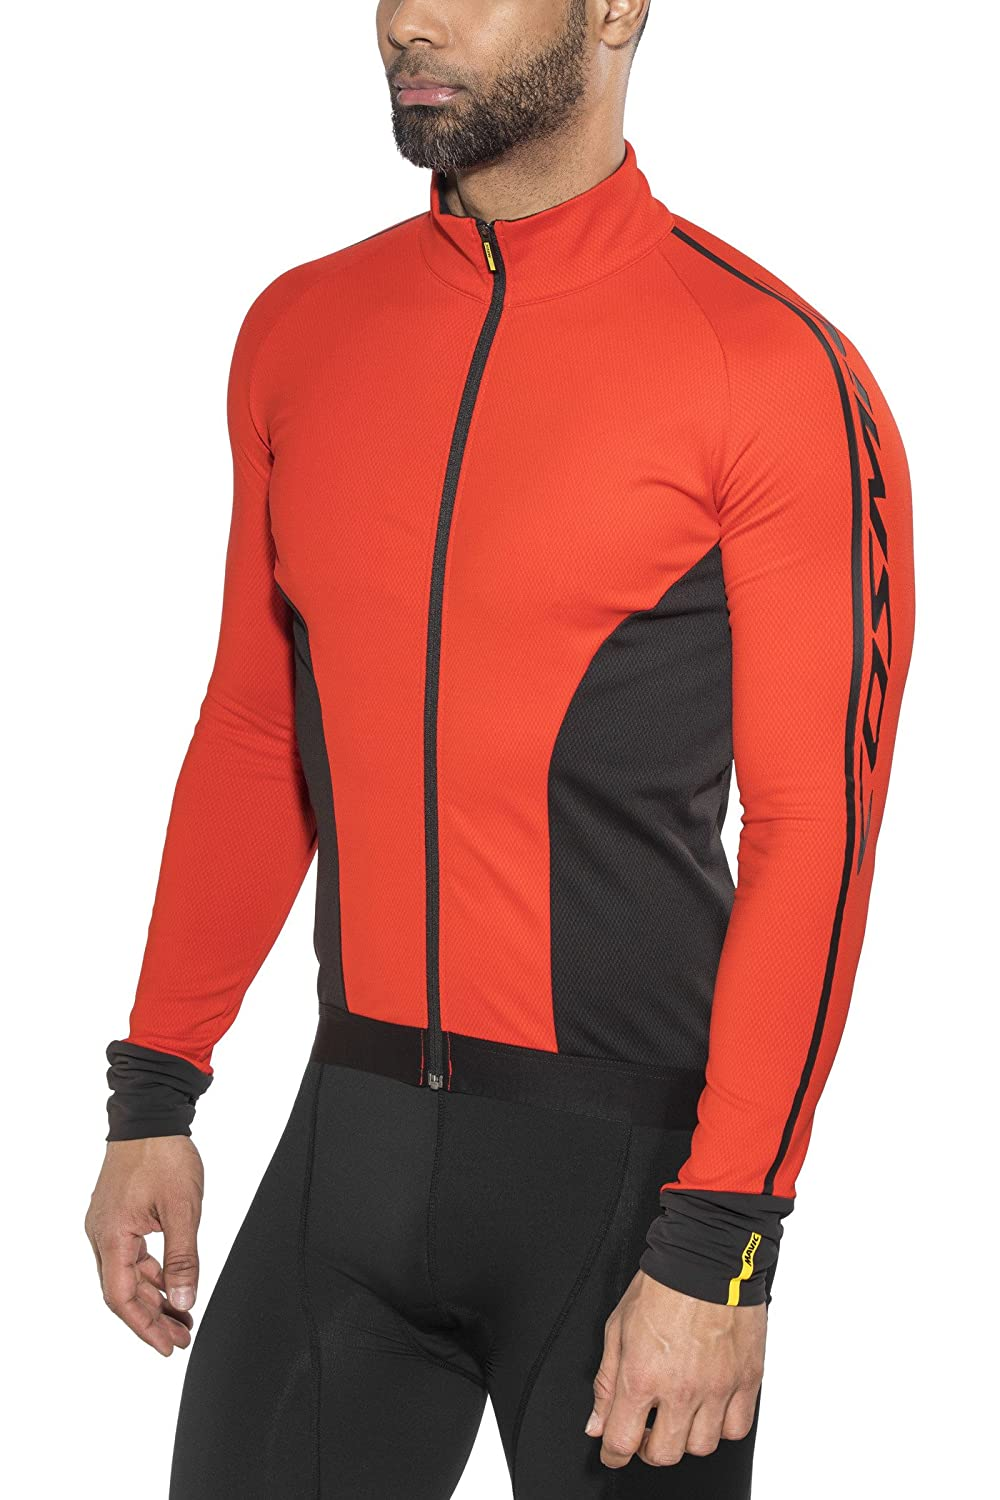 Mavic Cosmic Elite Thermo Winter Fahrrad Trikot rot schwarz 2018